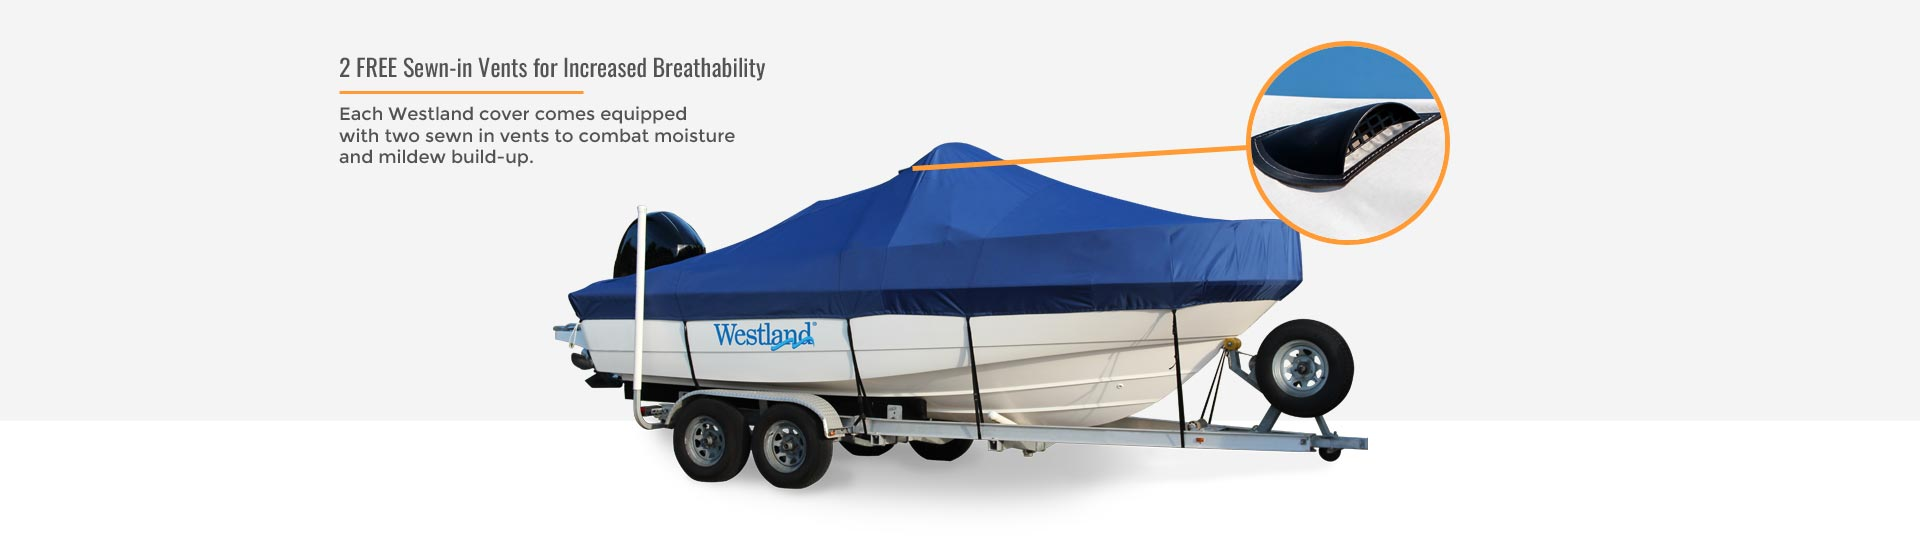 Westland boat cover vents